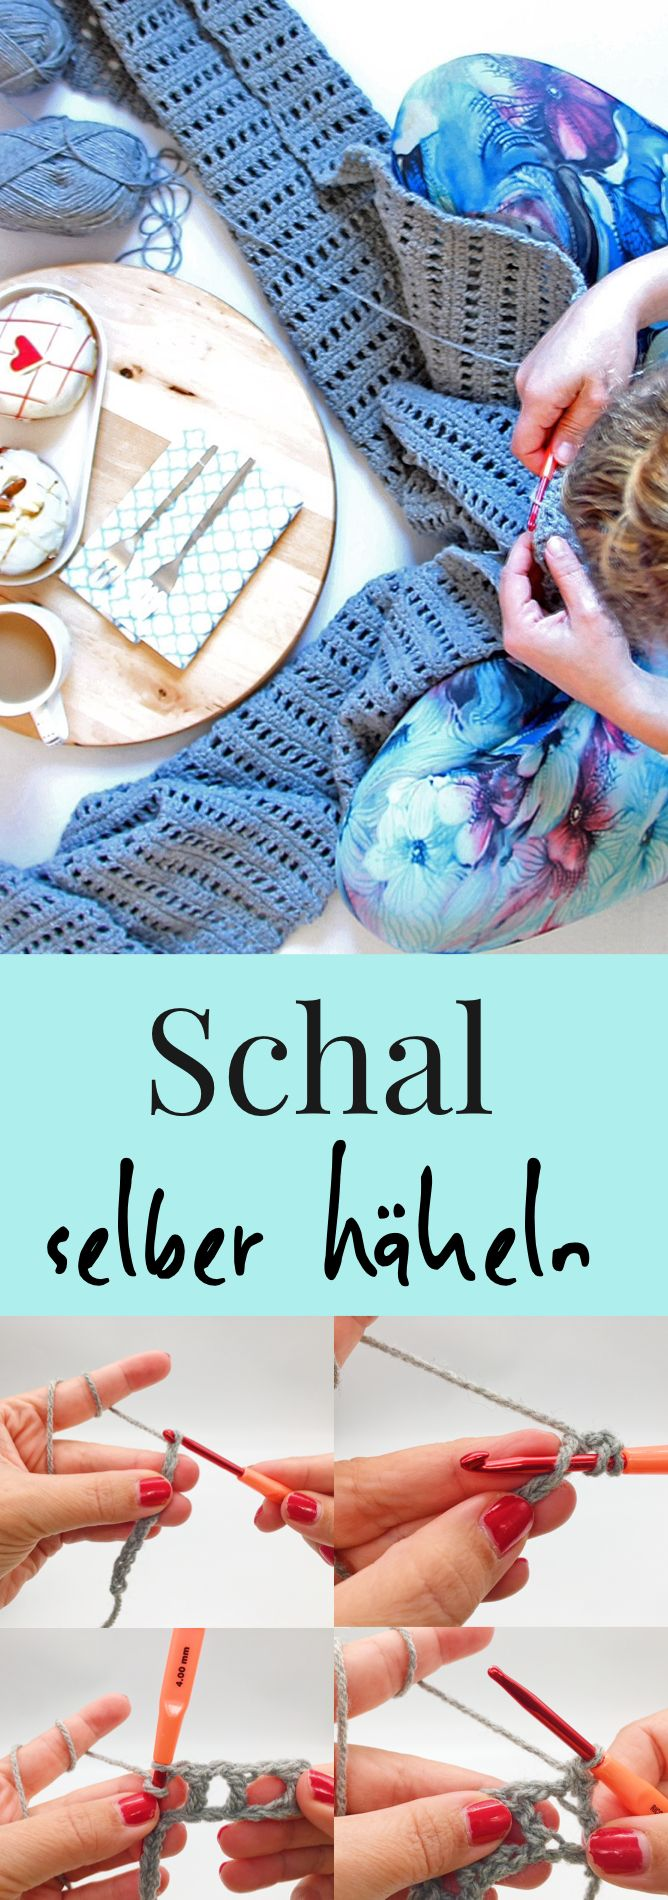 Best 400+ Häkeln, Crochet, Pattern, Anleitungen images on Pinterest ...